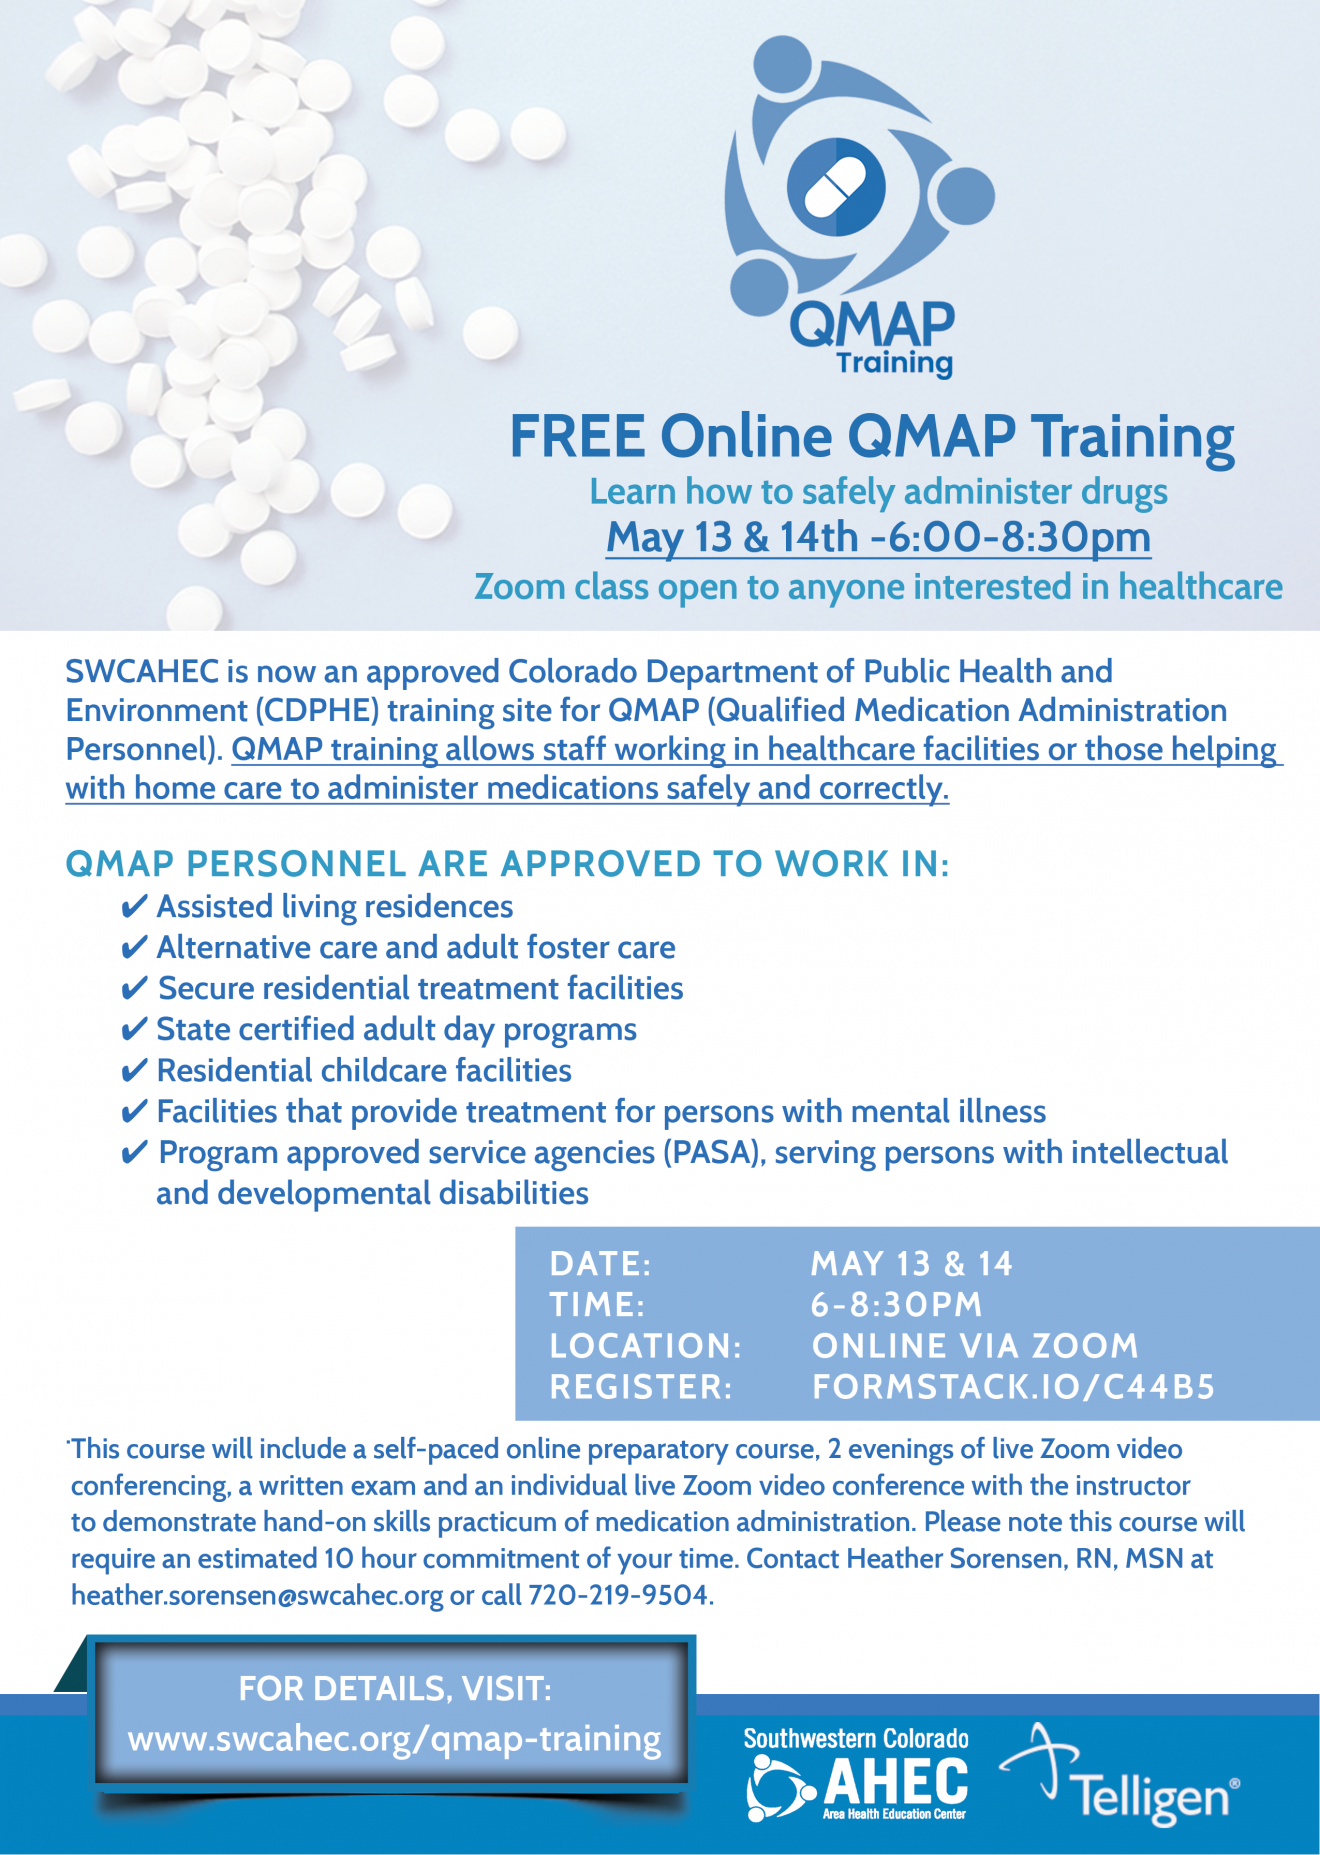 QMAP Training Flyer-online course for May 13